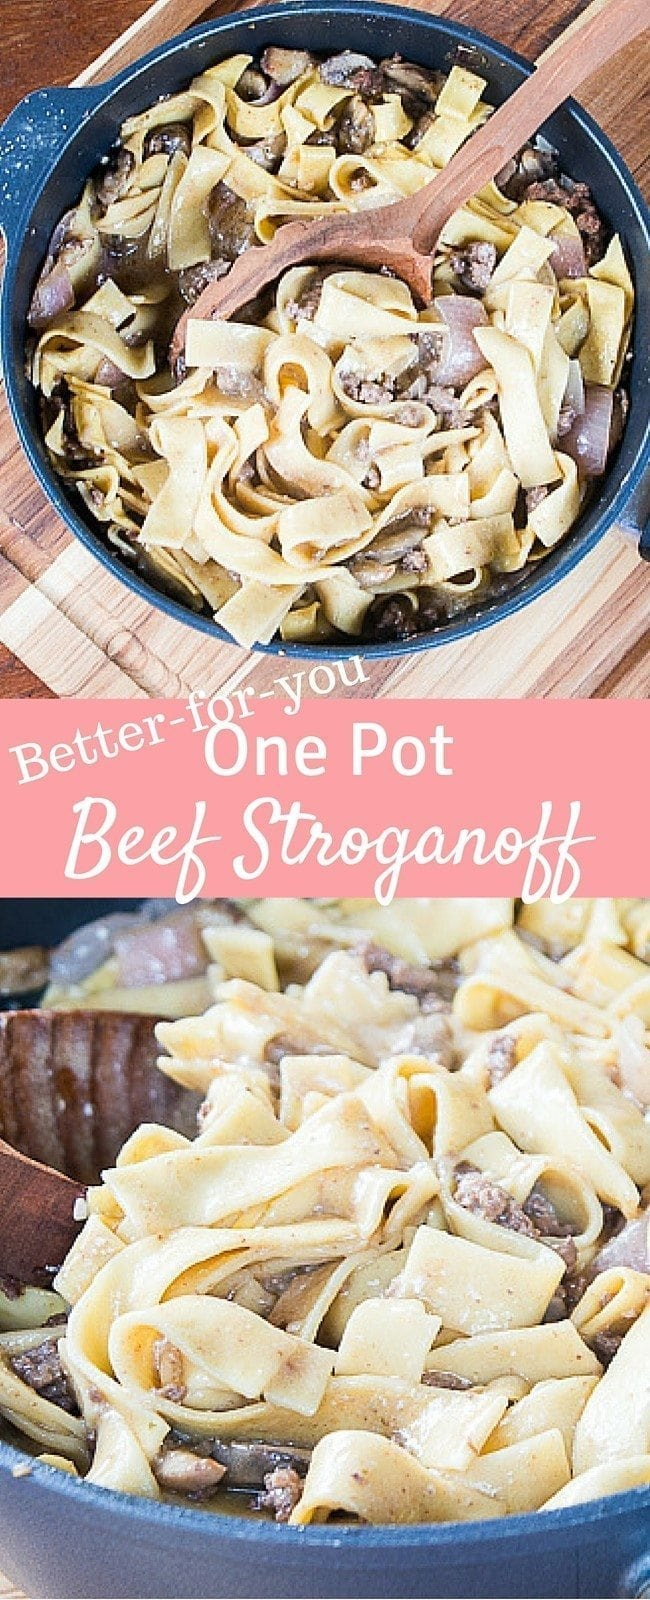 This one pot beef stroganoff is better-for-you without compromising any flavor or creaminess! It's an amazing easy dinner idea.